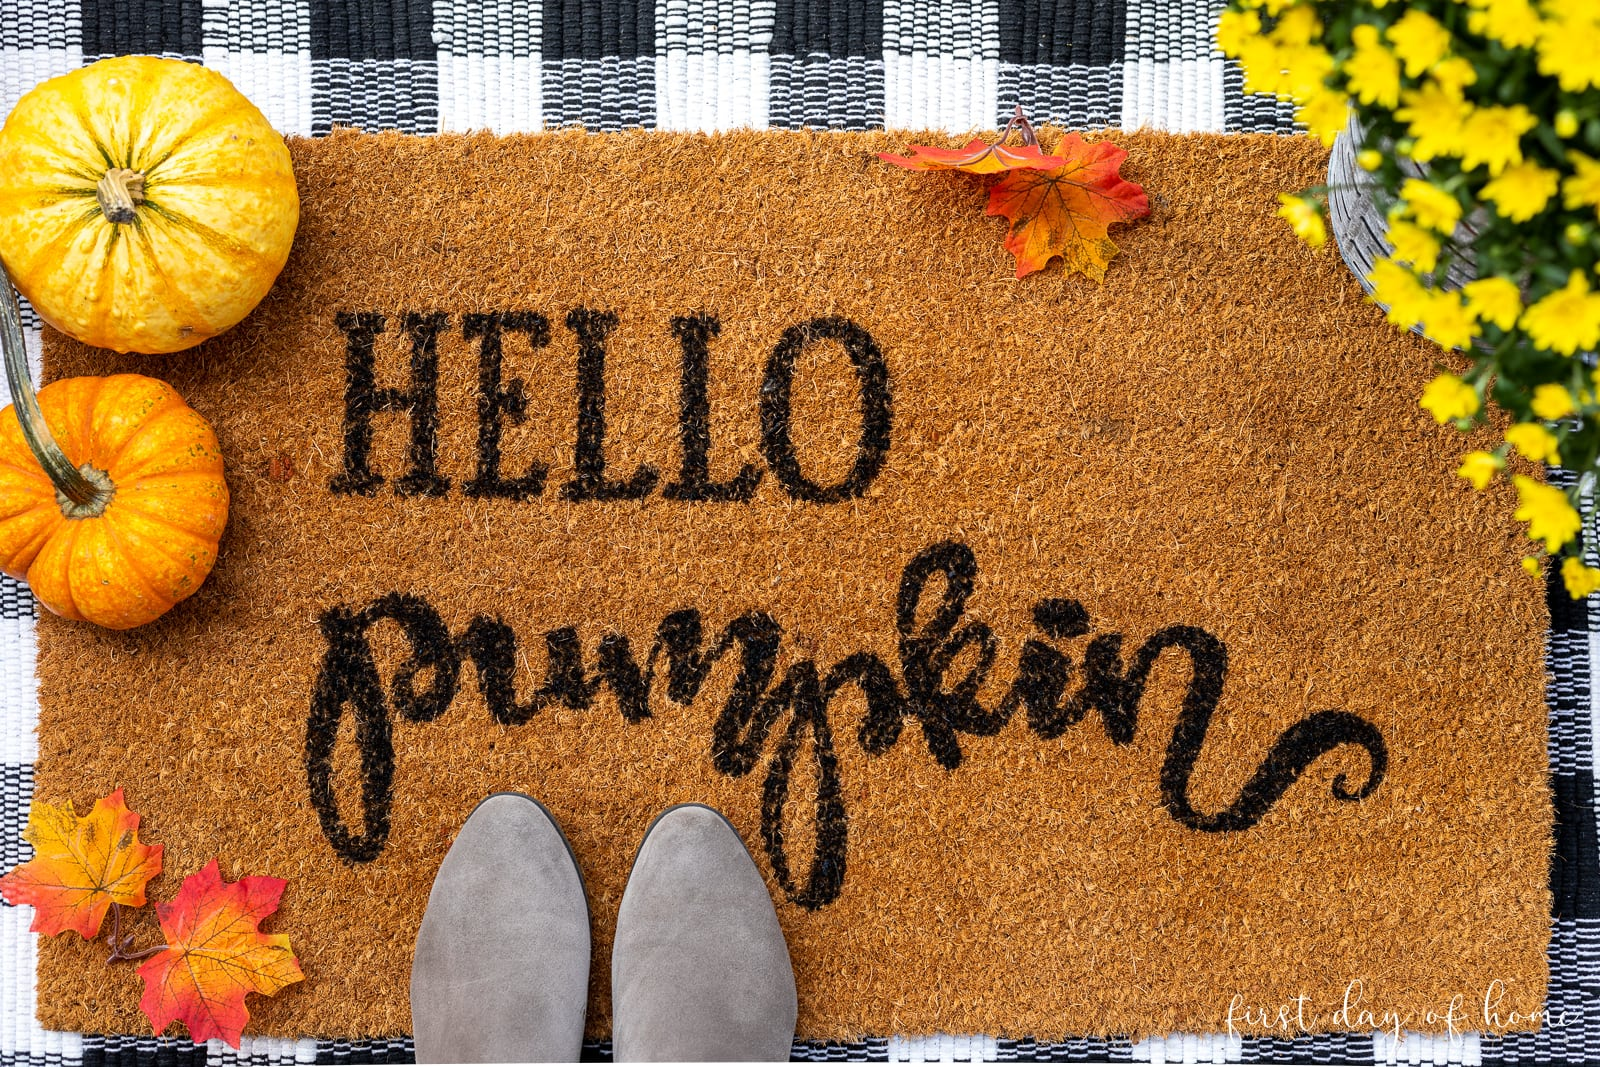 Hello Pumpkin coconut mat with black and white buffalo plaid rug layered underneath, surrounded by pumpkins and mums